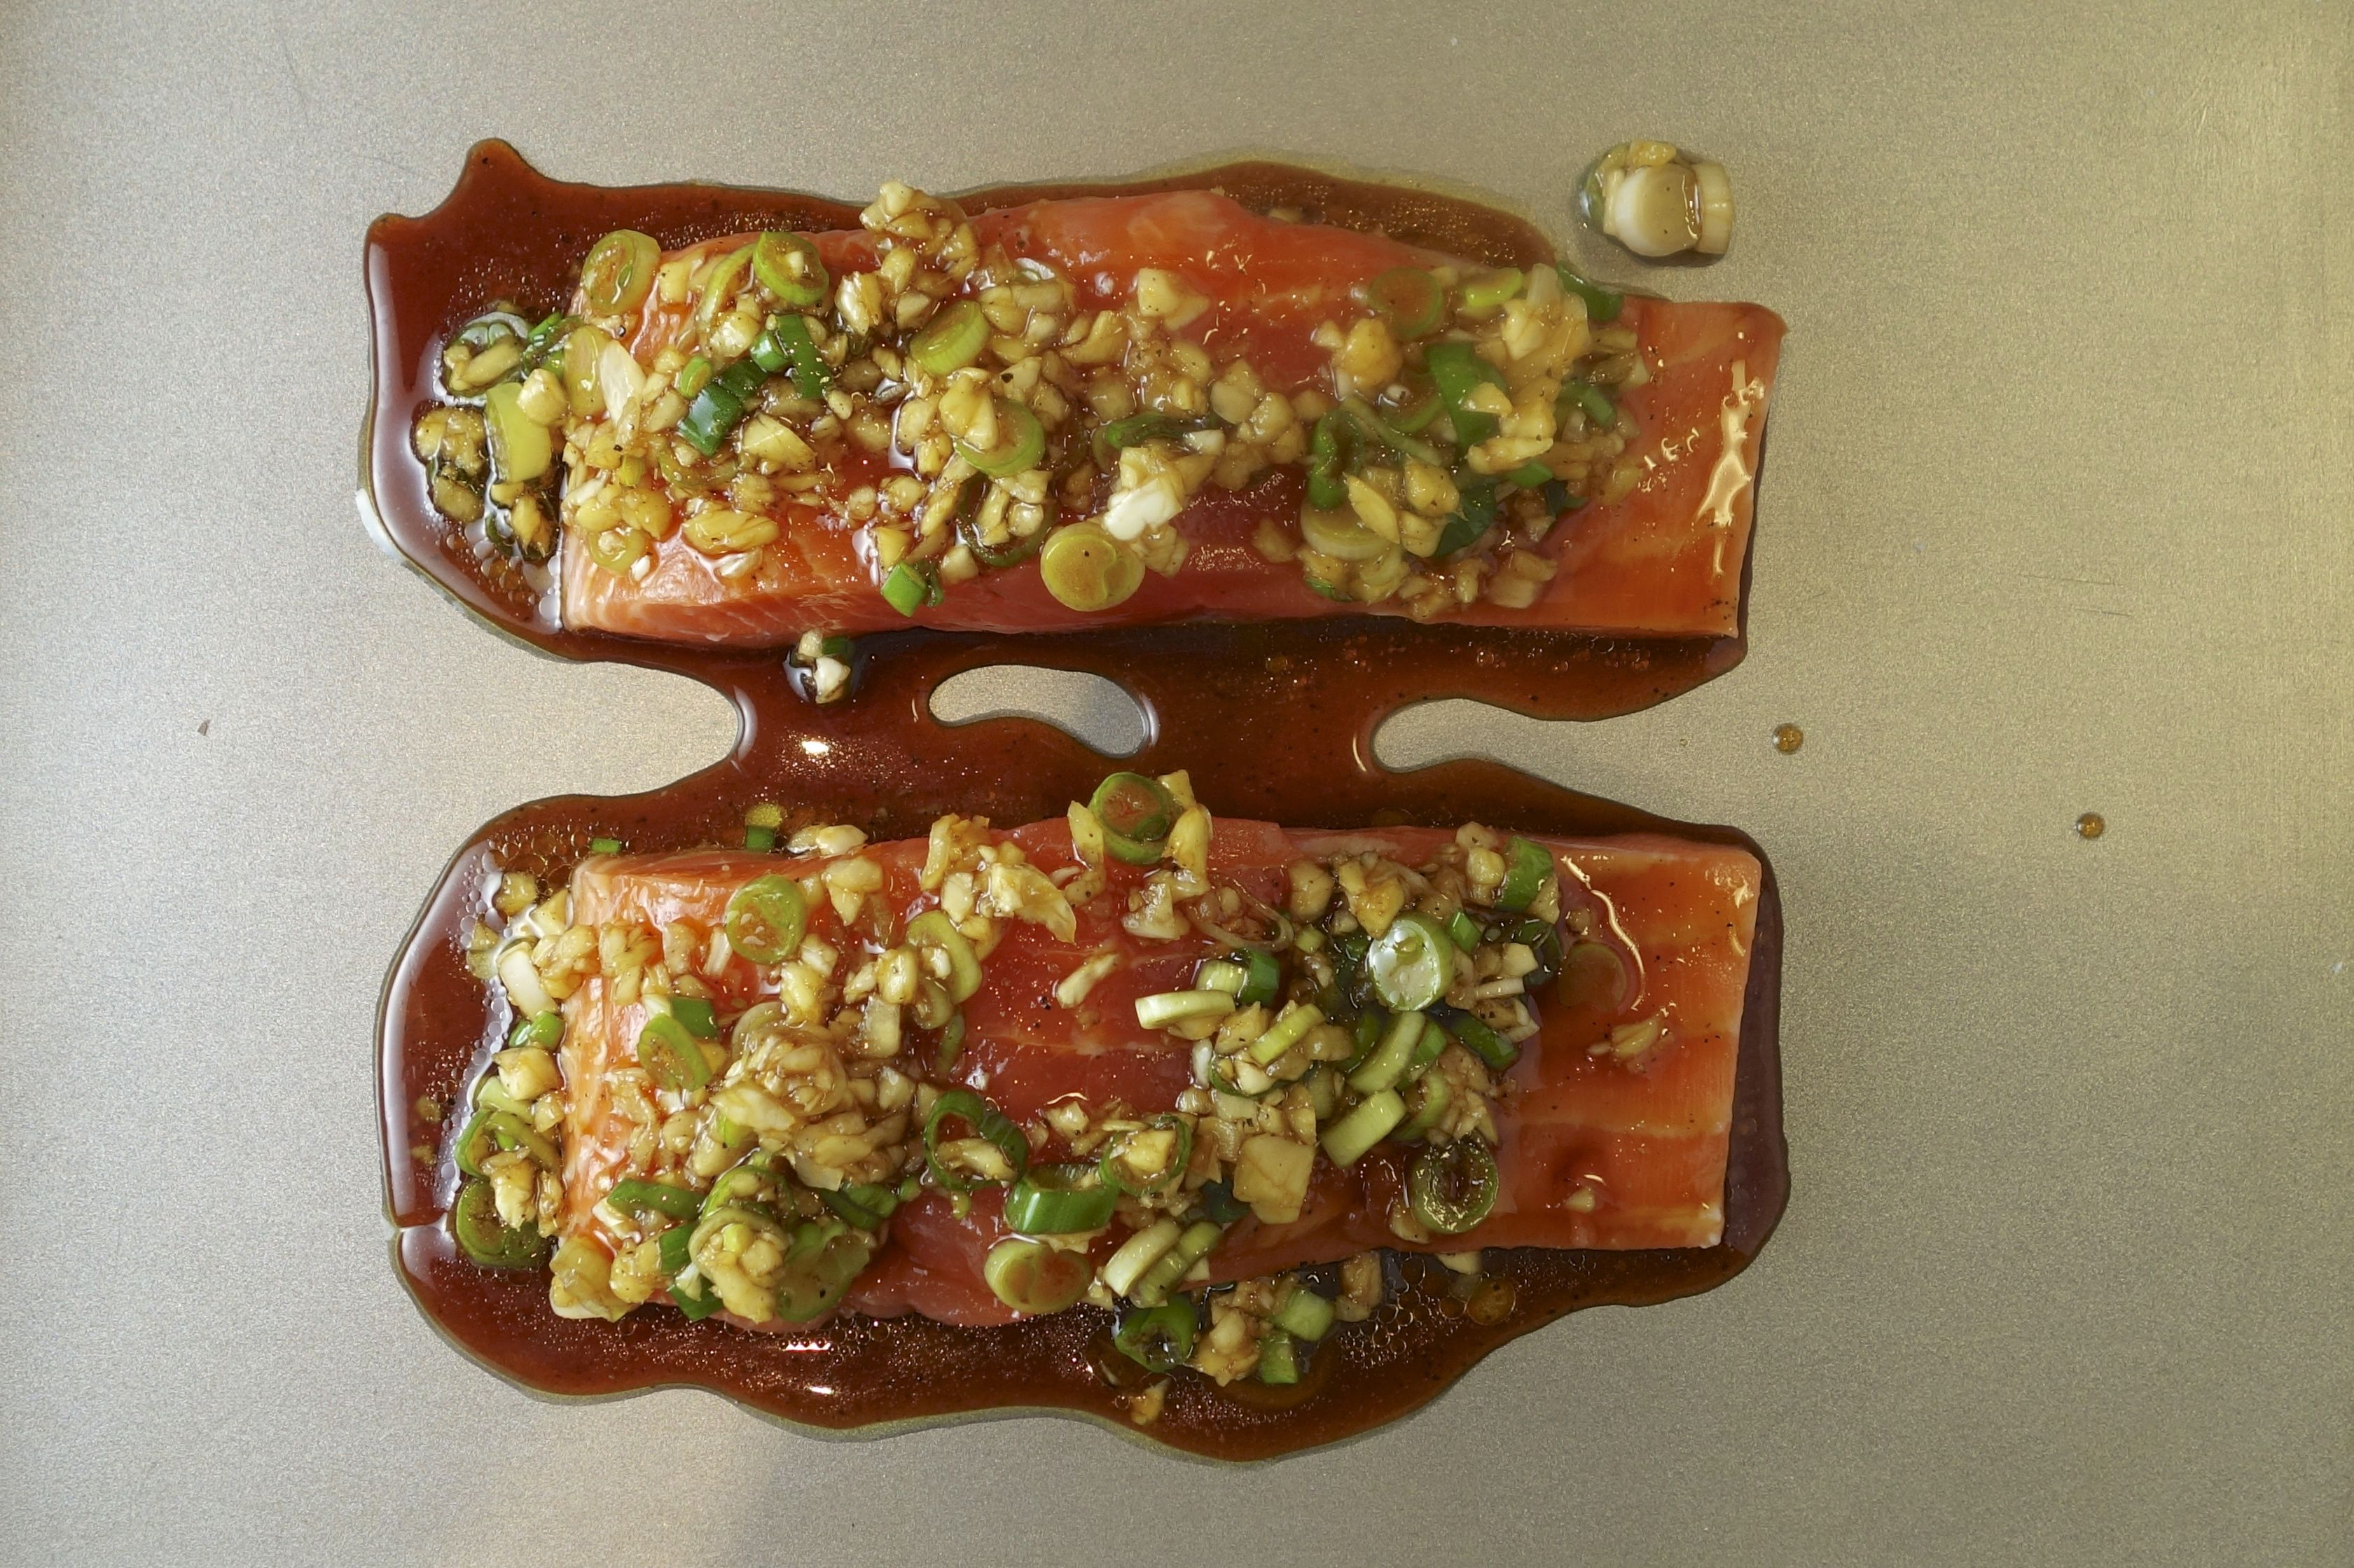 Scallion-and-ginger-crusted salmon